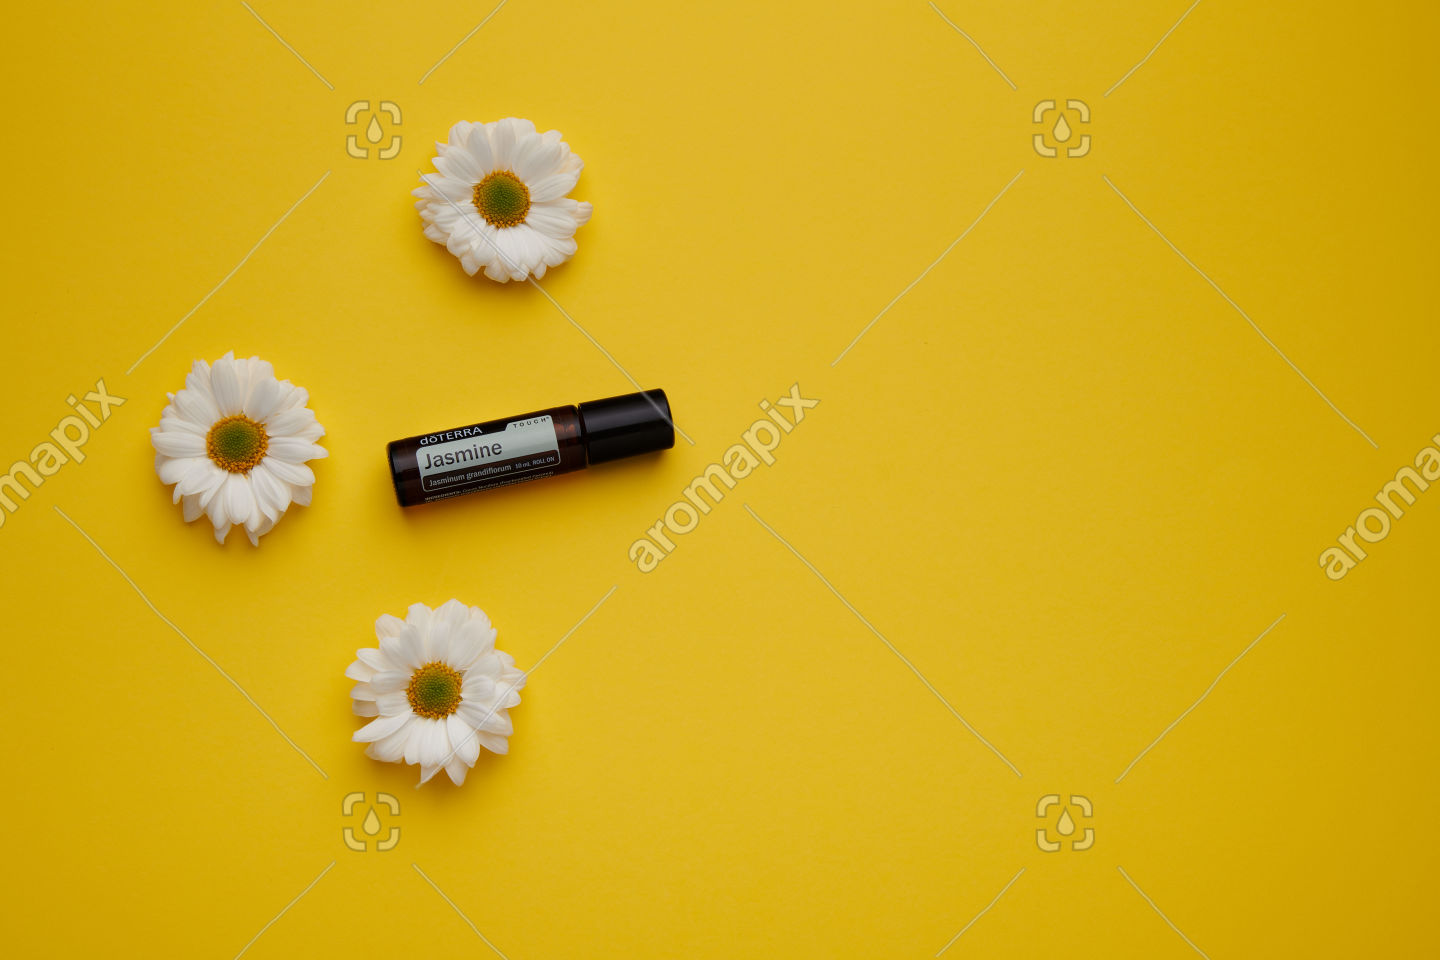 doTERRA Jasmine Touch with flowers and on yellow